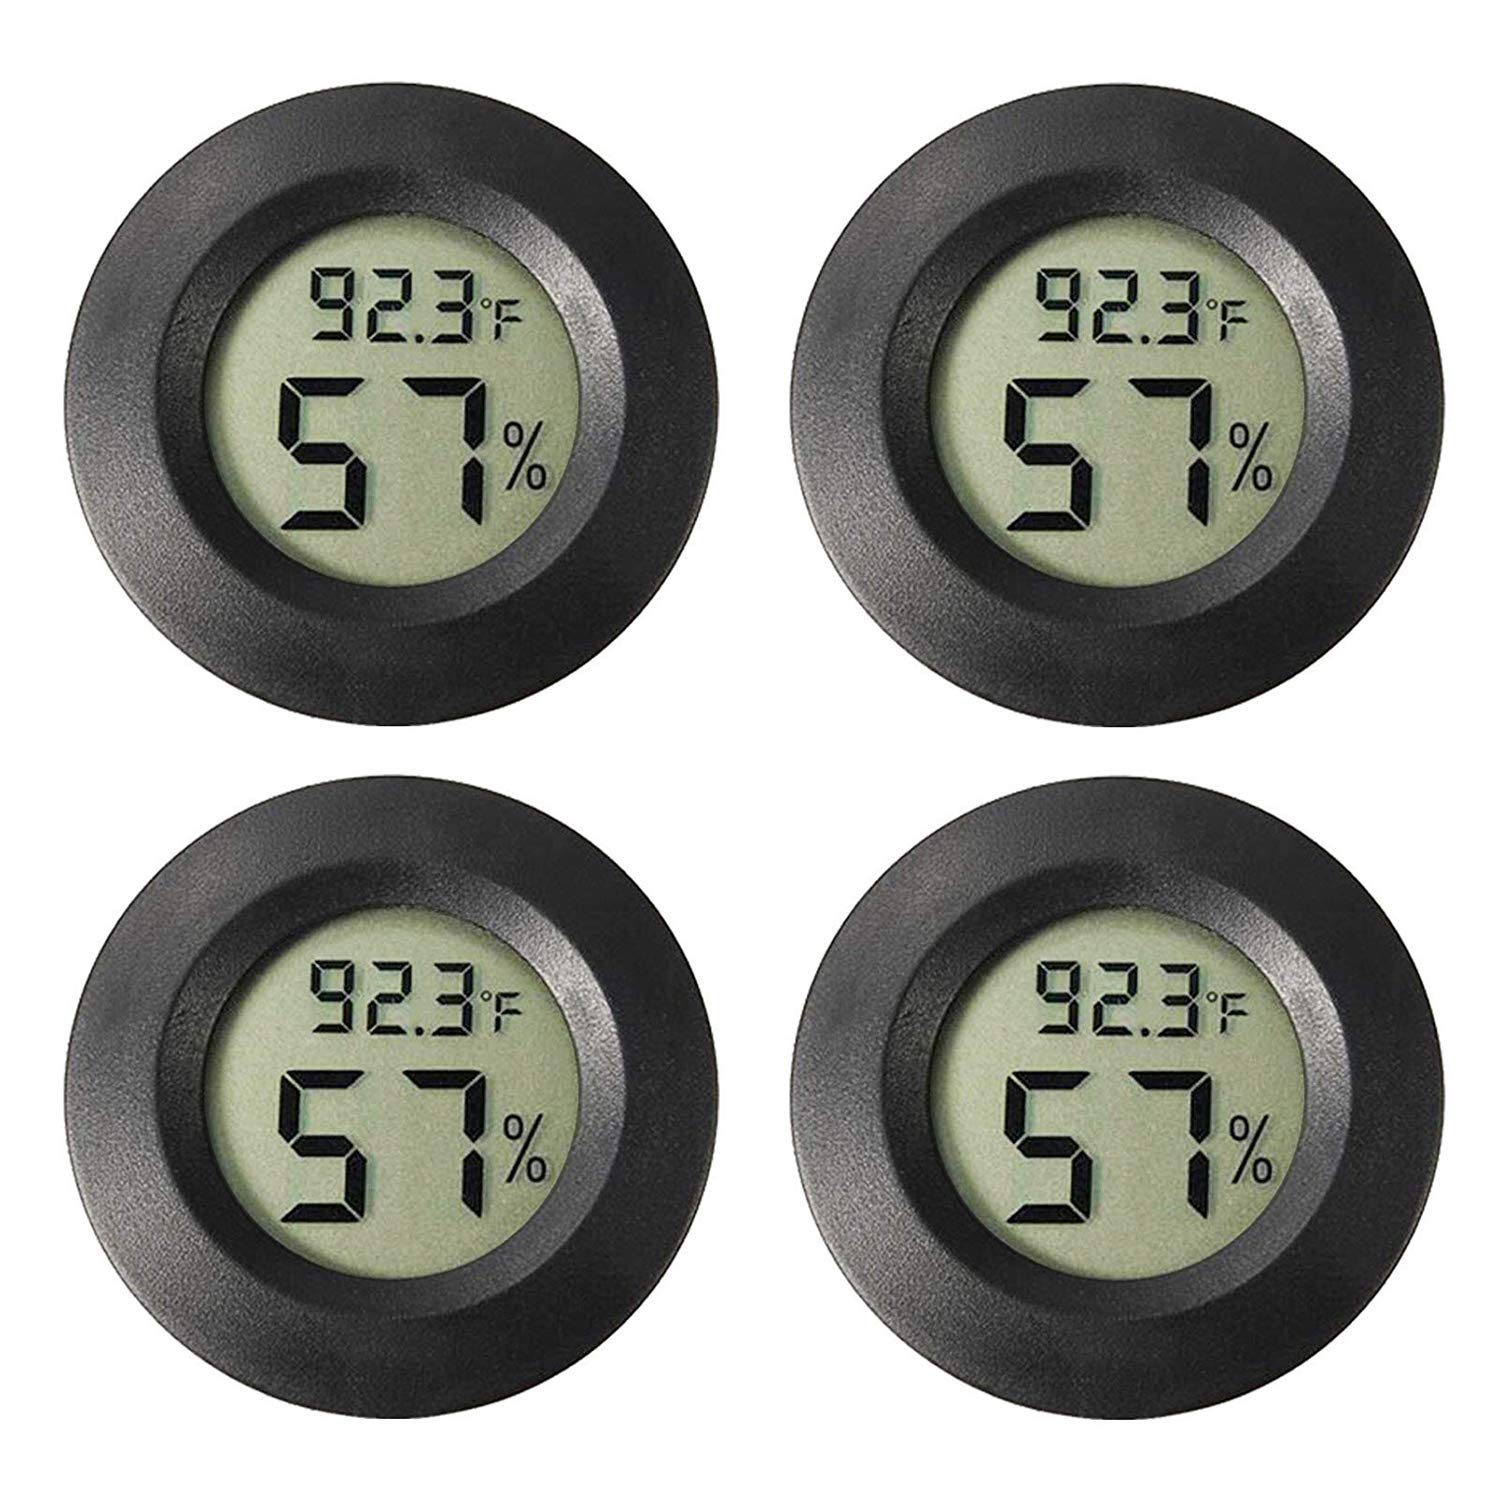 Rojuna 4-Pack Mini Hygrometer Thermometer, ℃/℉ Meter Digital LCD Monitor Indoor Room Handful Humidity Temperature Gauge for Humidors Home Humidifiers Car Greenhouse, Measure in Fahrenheit/Celsius by Rojuna